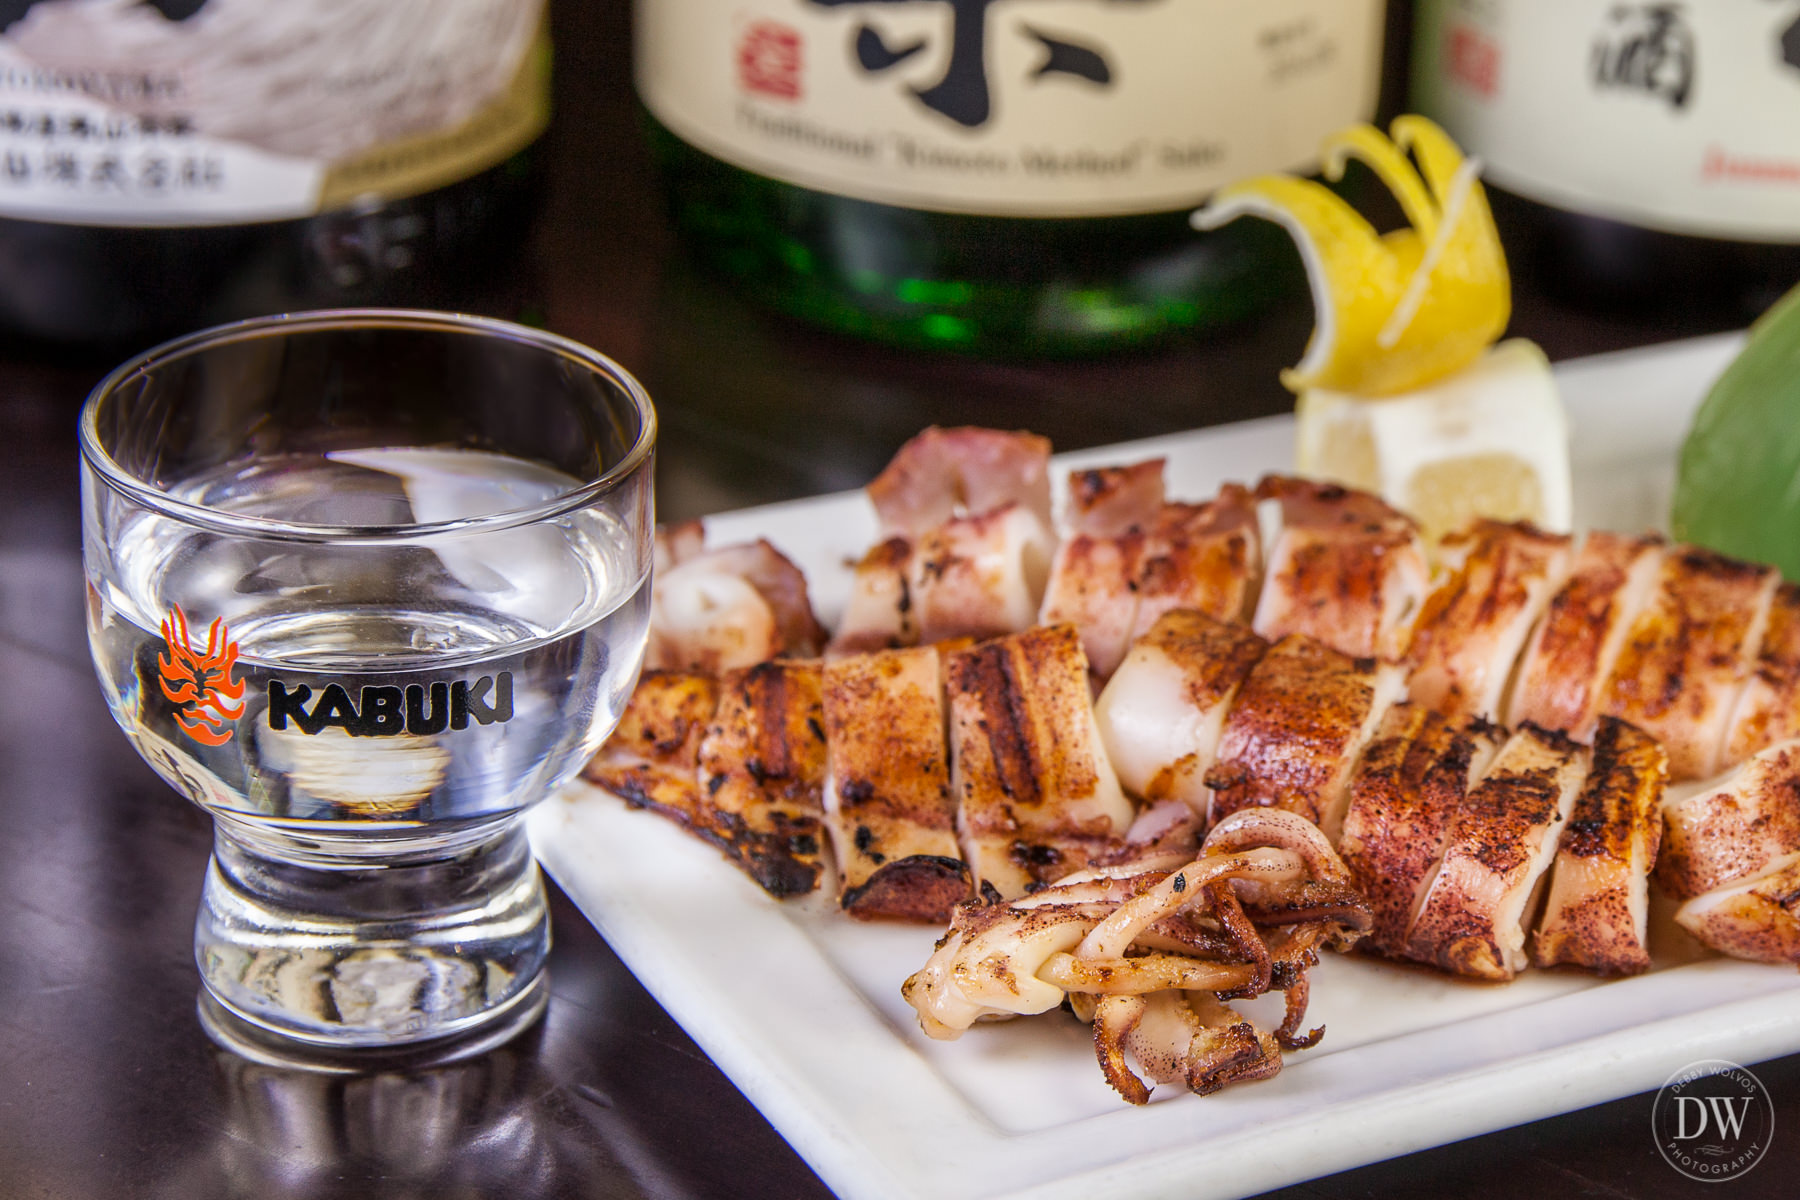 To accompany the grilled calamari, Yuji likes a dry sake like Otokoyama Tokubetsu Junmai.